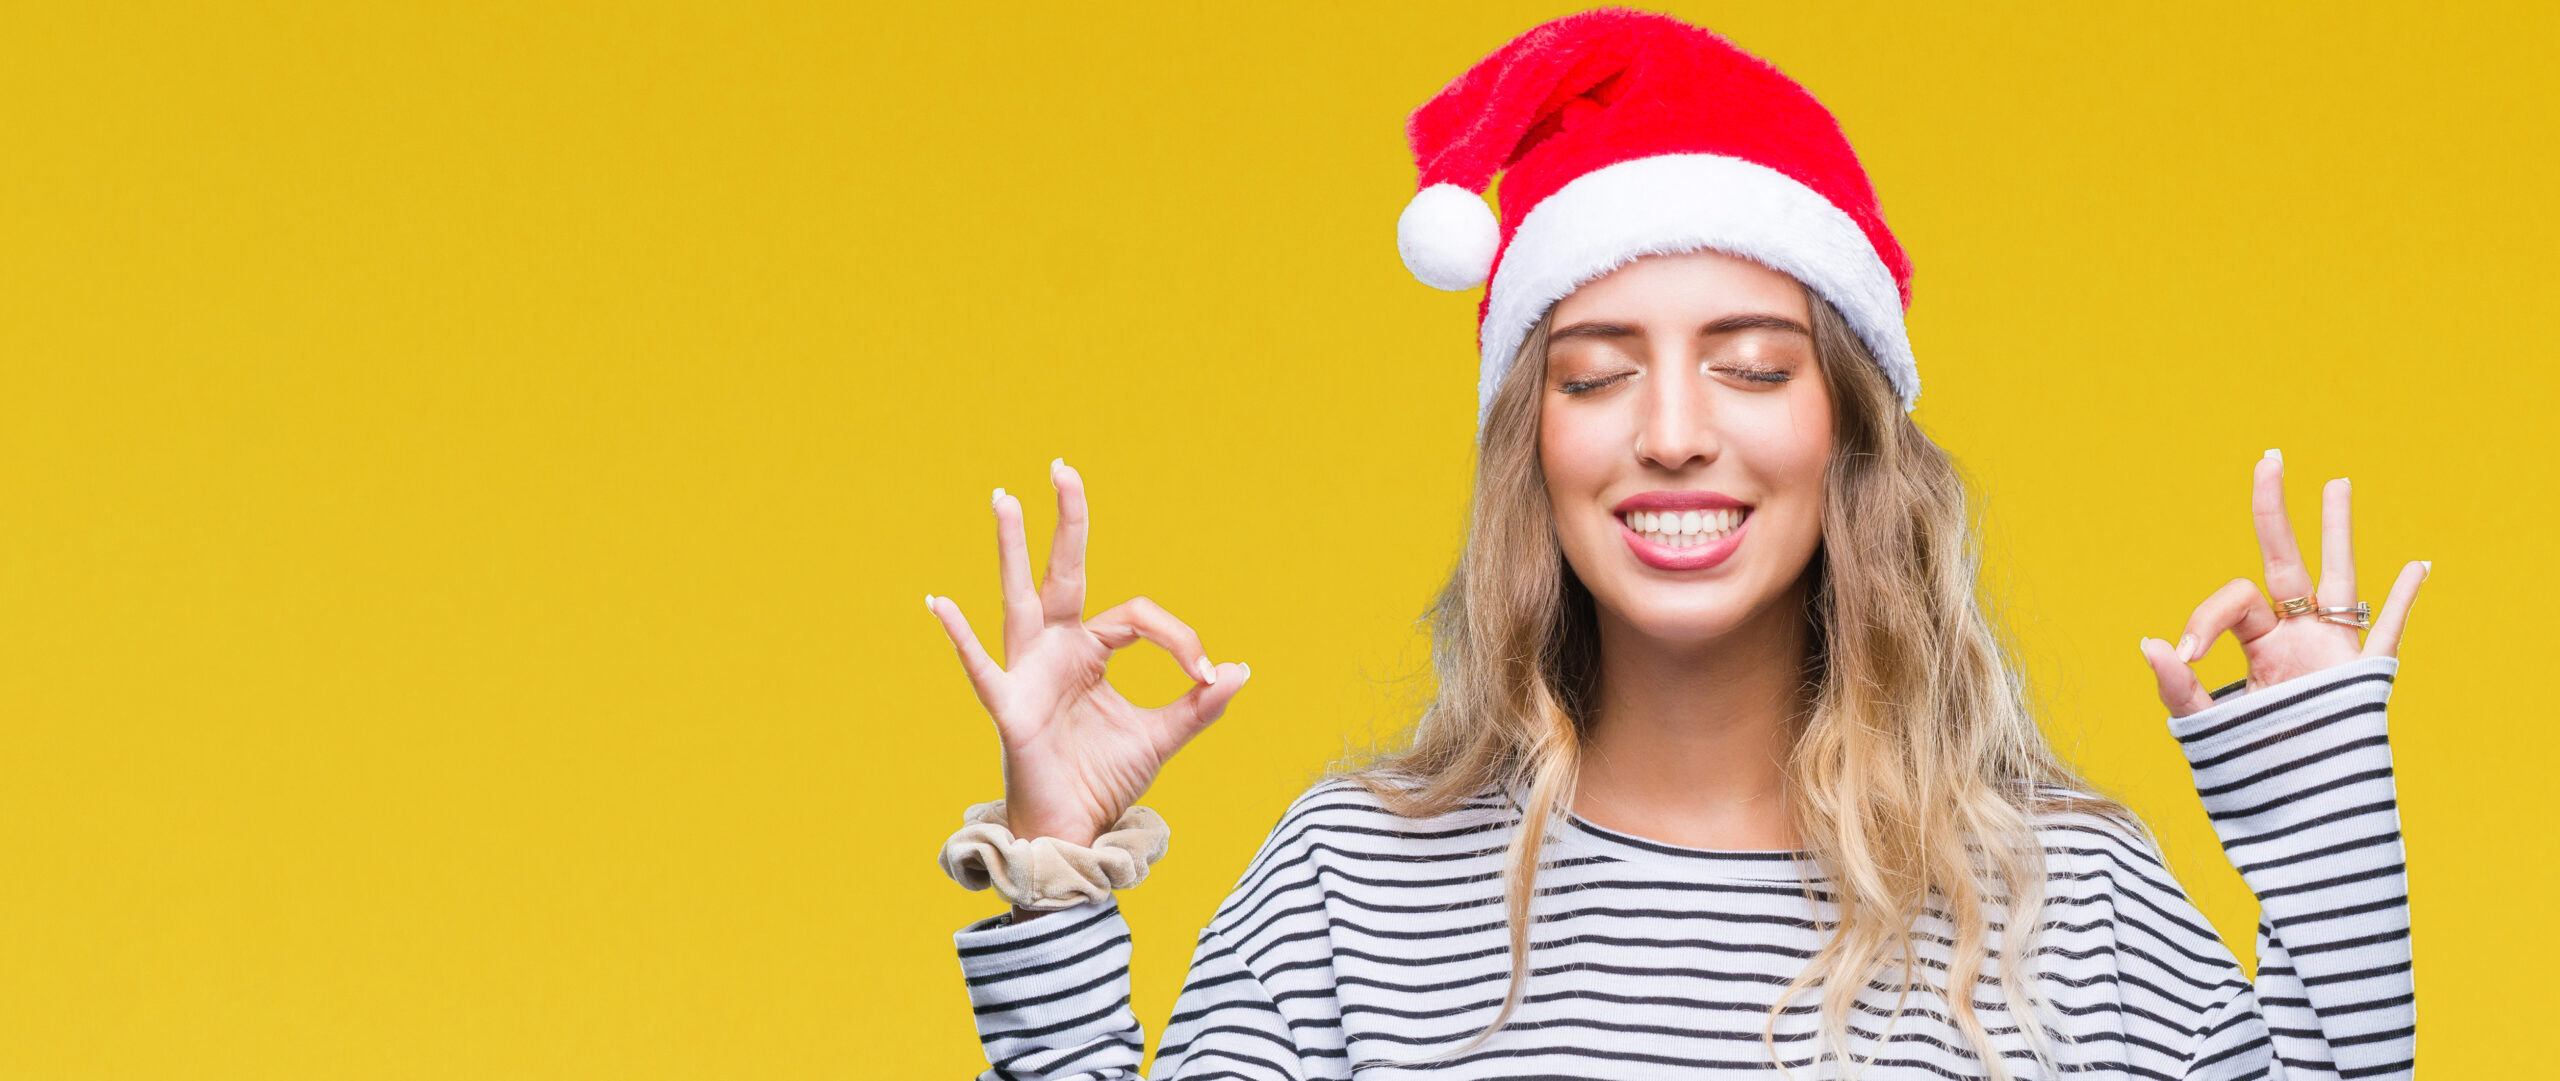 Managing Holiday Stress During a Pandemic